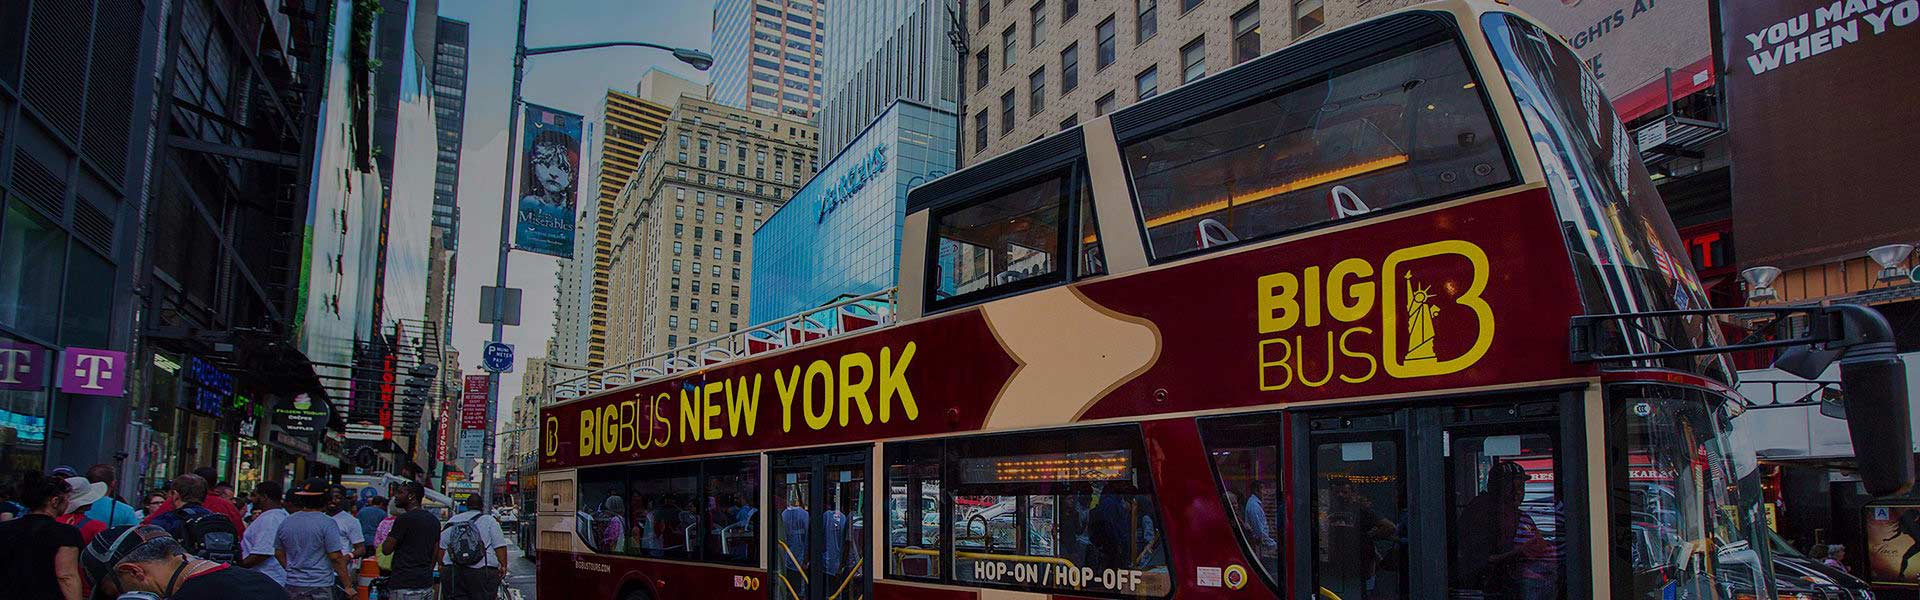 Big Bus sightseeing tour driving in New York